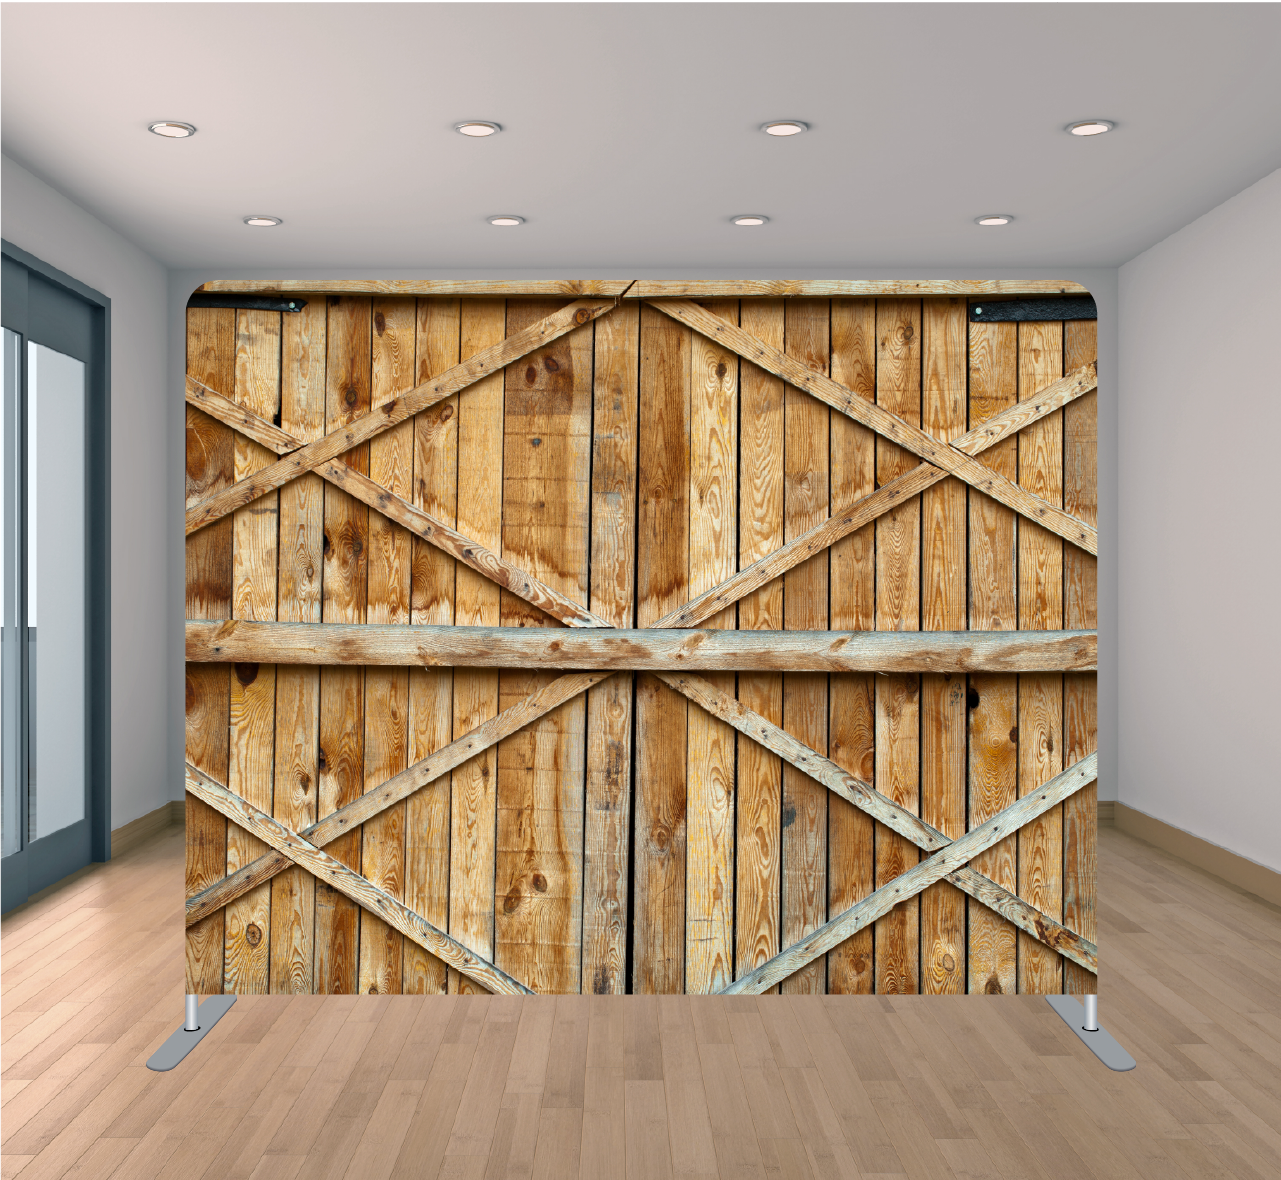 8x8 Pillowcase Tension Backdrop- Barn Doors